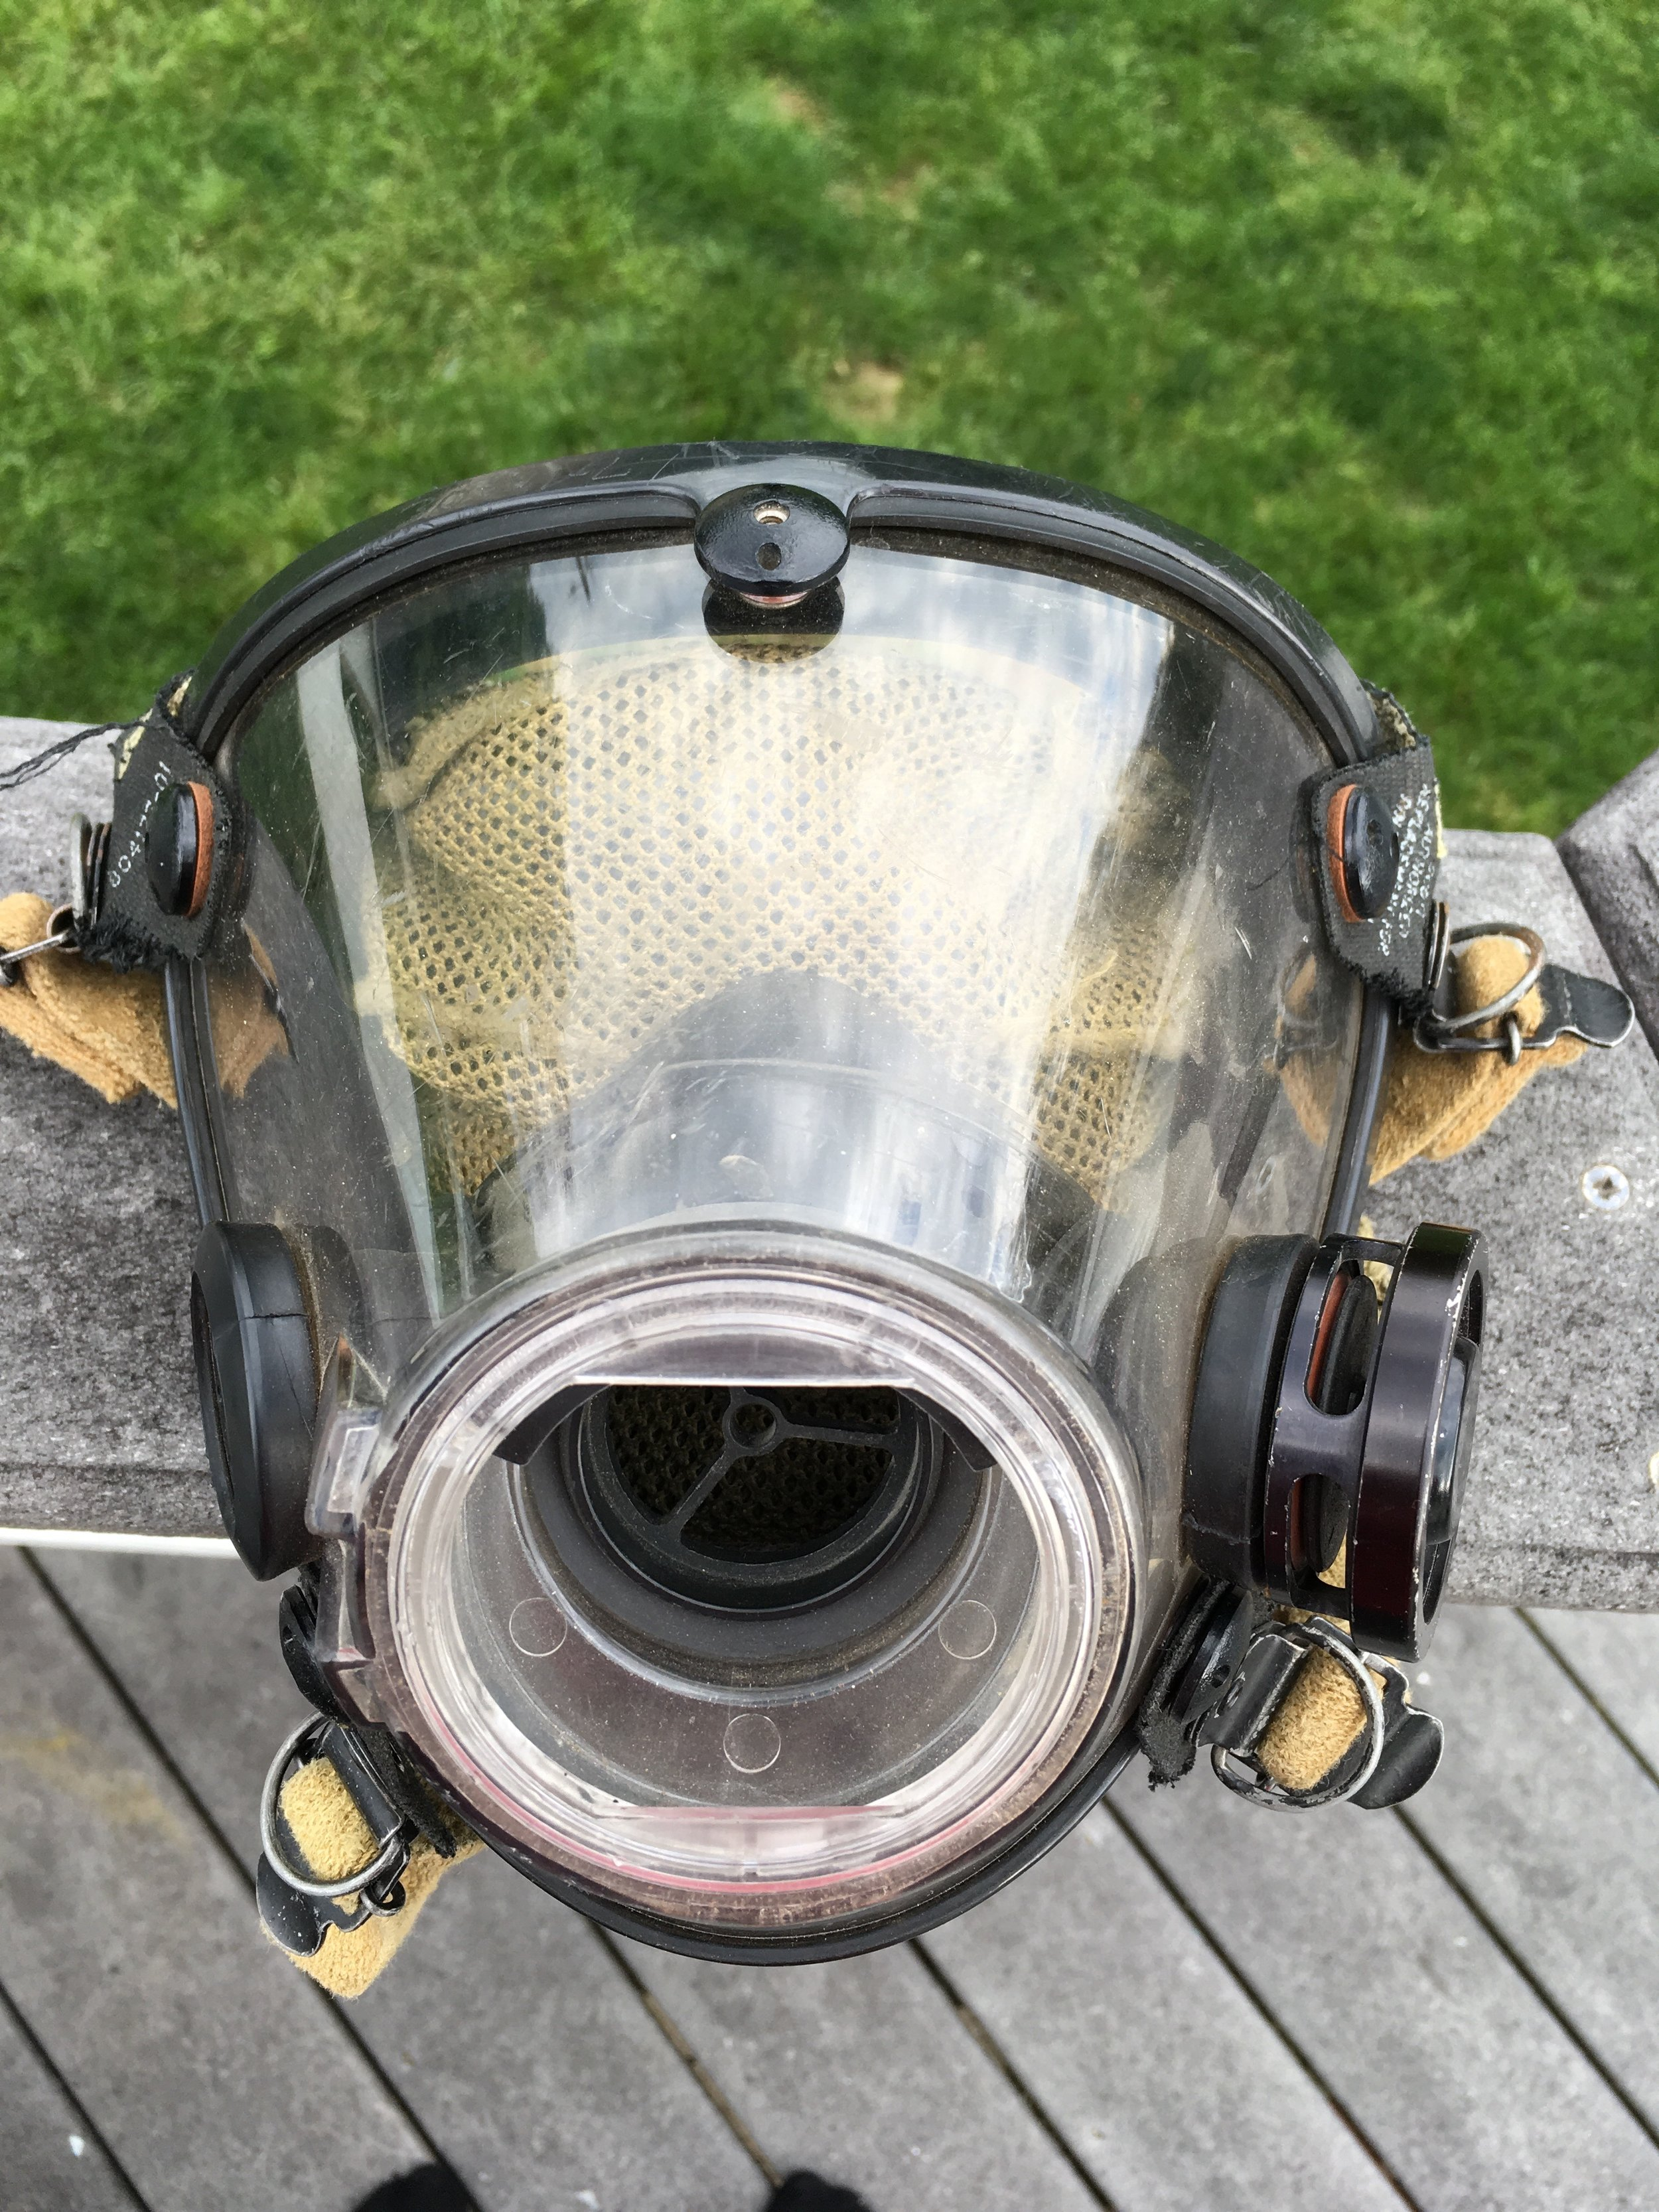 Scott AV 2000 with Exhalation valve on the left side respective to the mask. If you look close you can see the red valve seal.